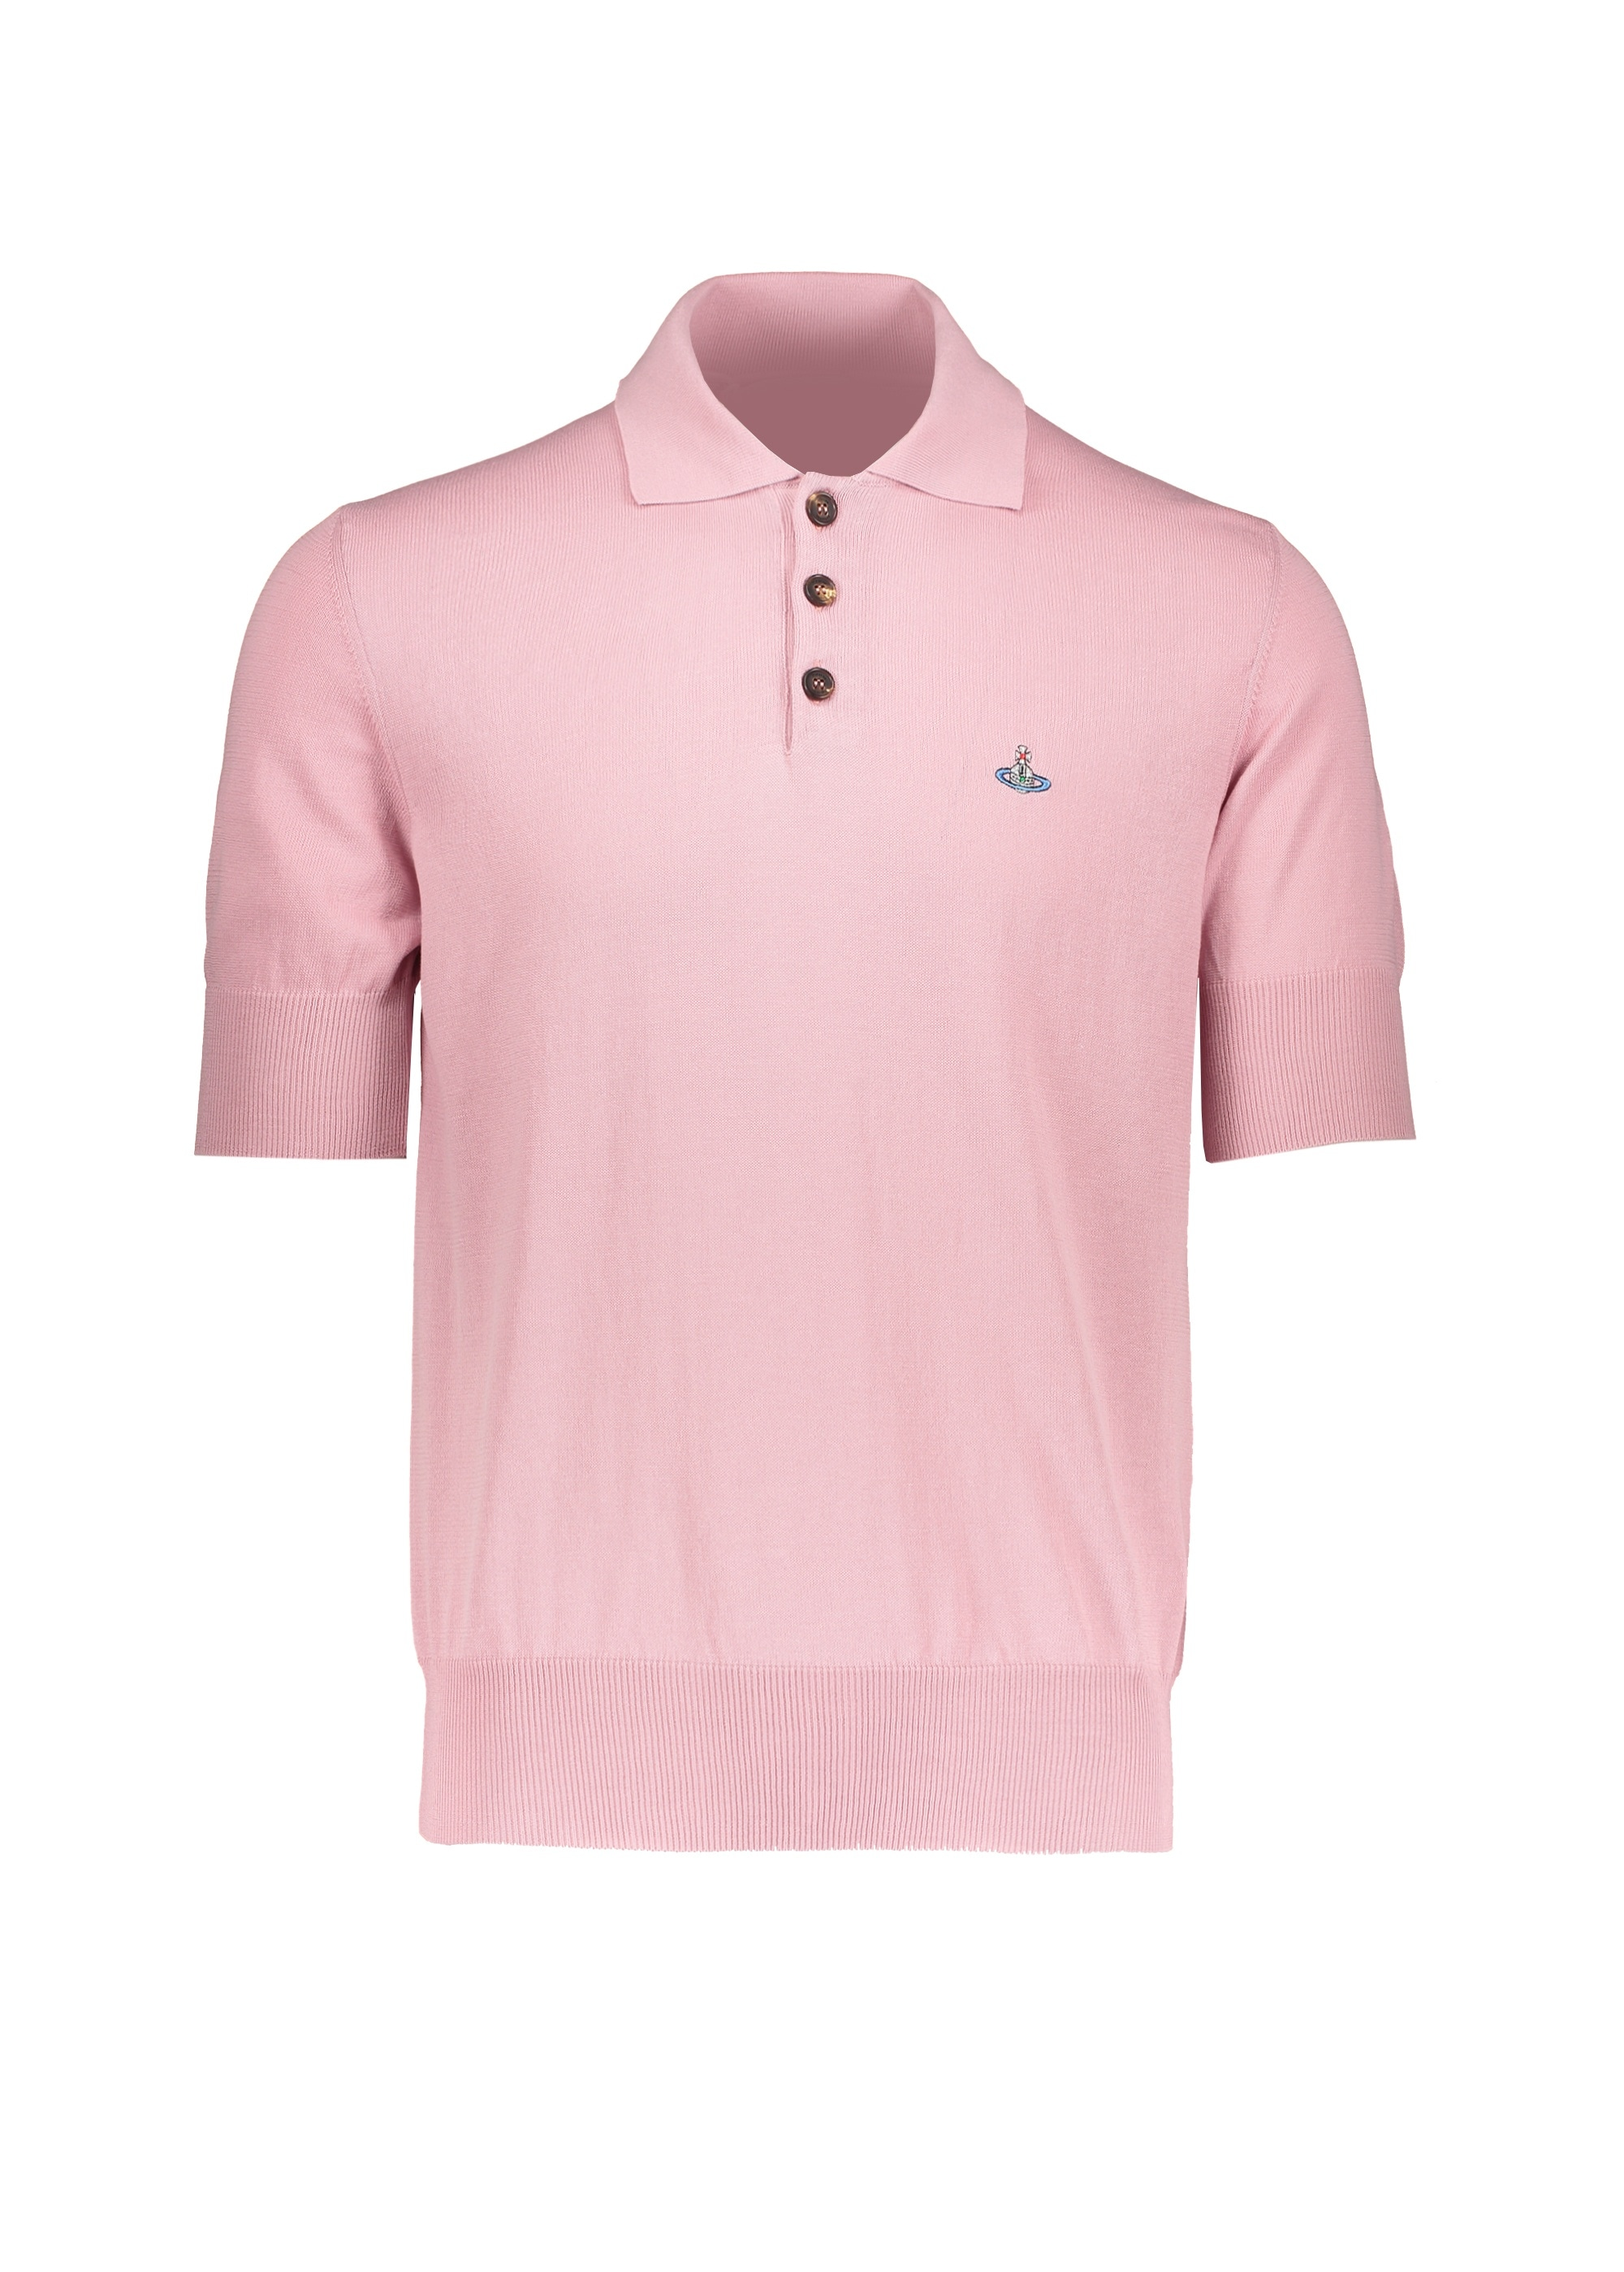 73f324b64 Vivienne Westwood Mens Knit Polo - Pink - Jumpers from Triads UK